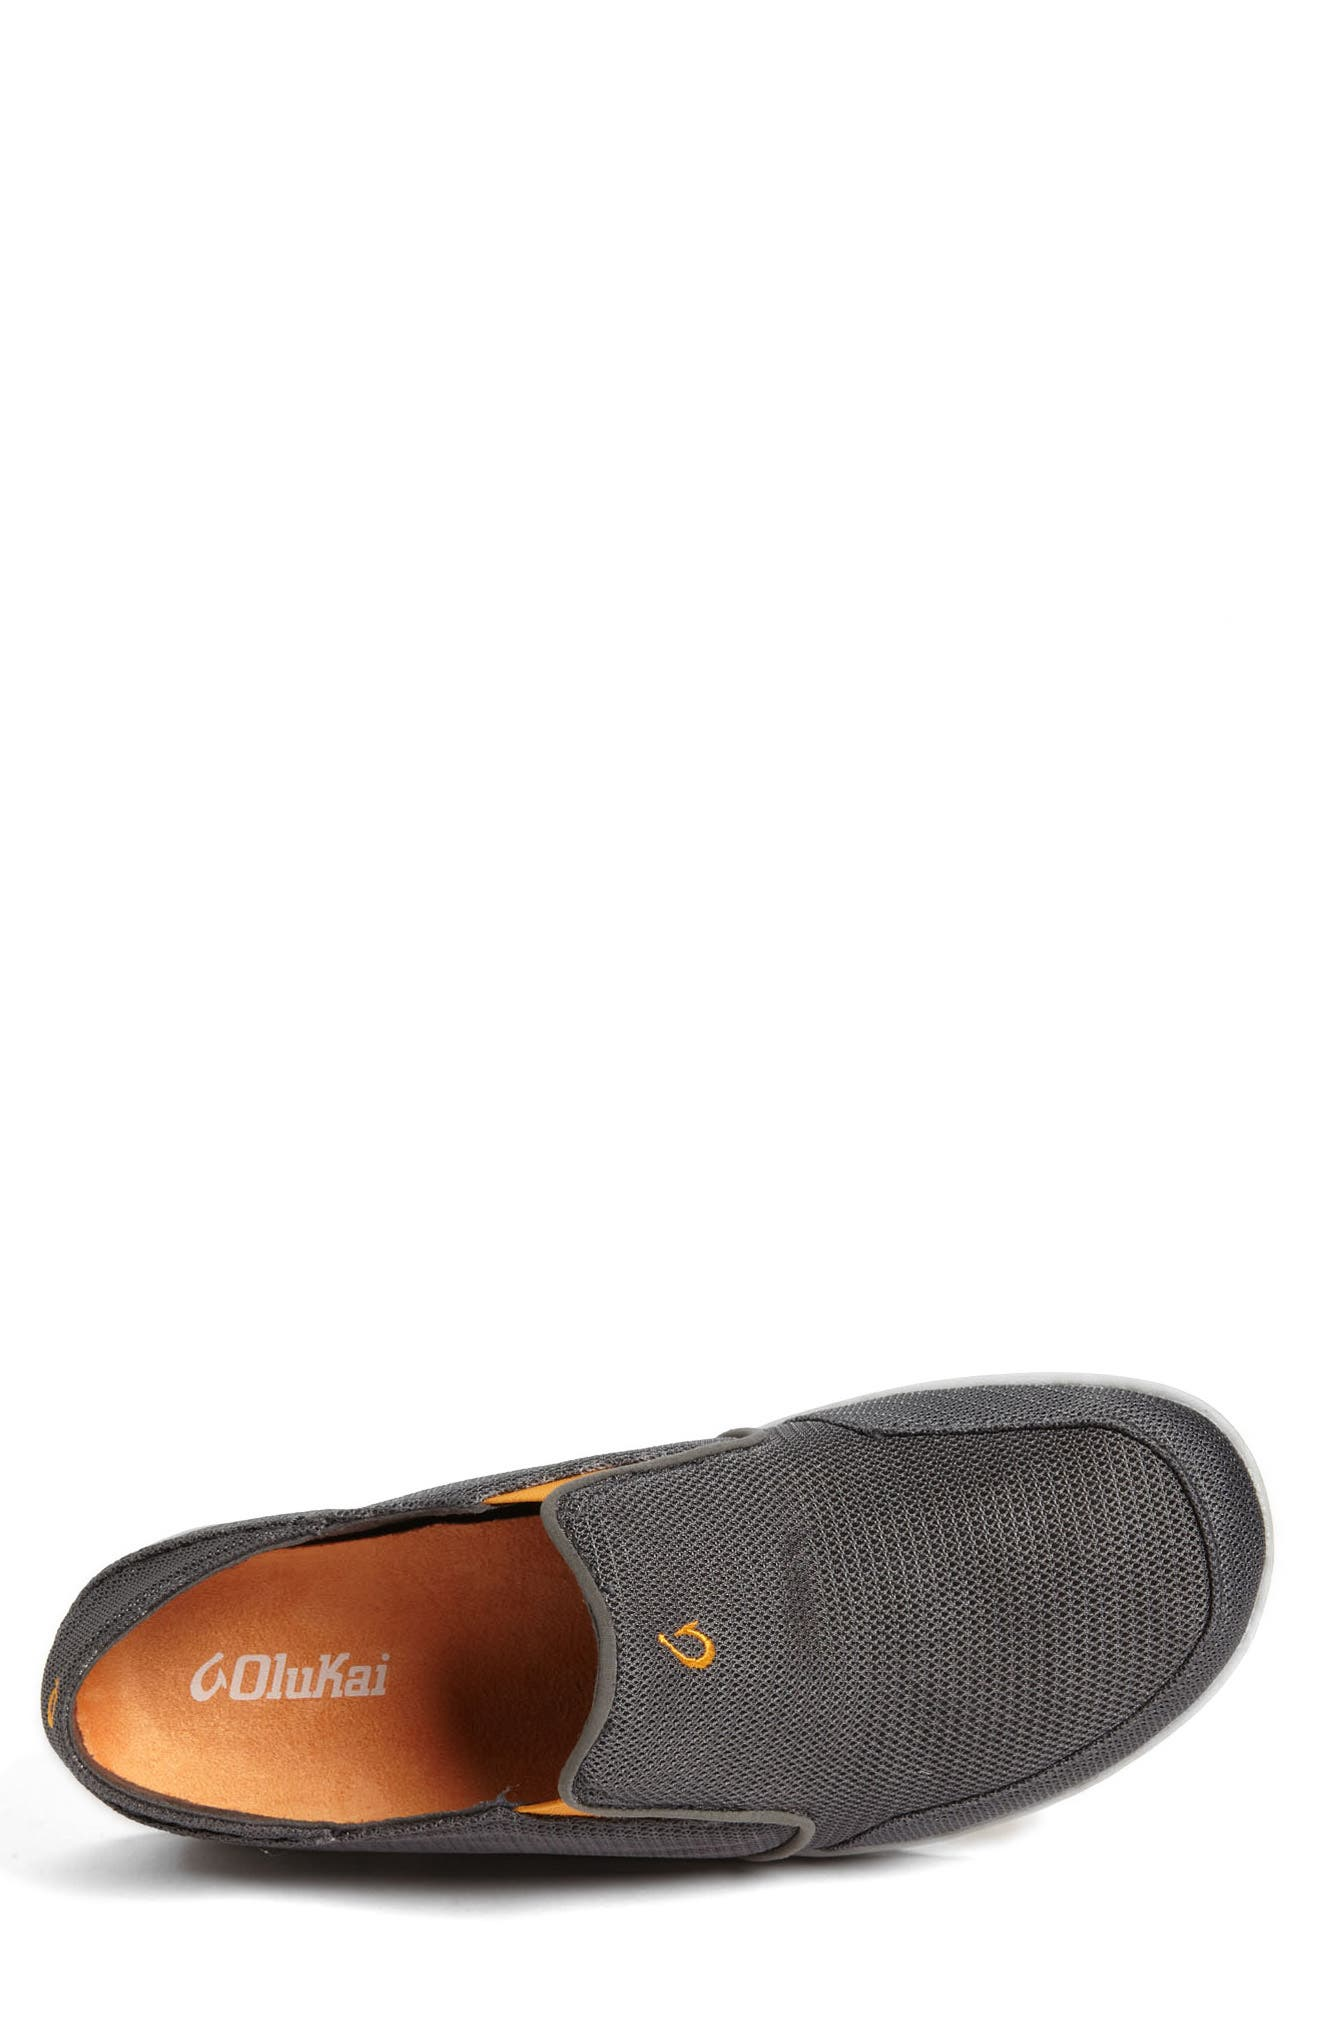 Nohea Mesh Slip-On,                             Alternate thumbnail 3, color,                             DARK SHADOW/ DARK SHADOW